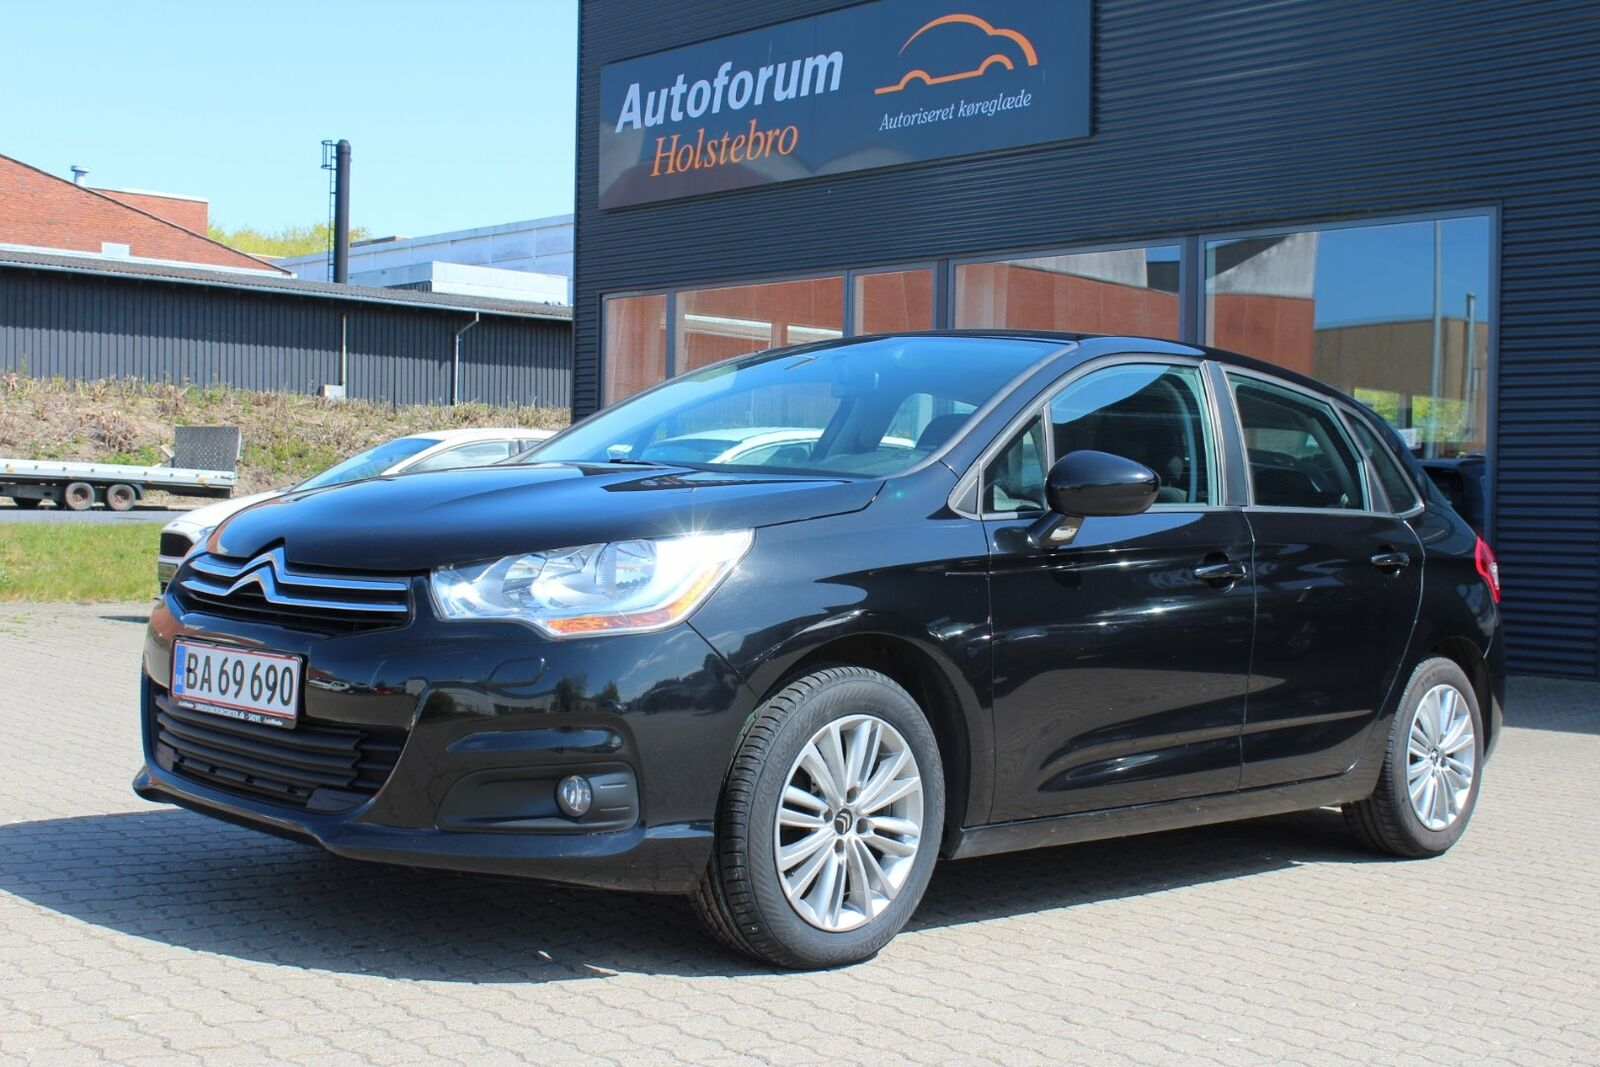 Citroën C4 1,6 HDi 90 Attraction 5d - 46.800 kr.